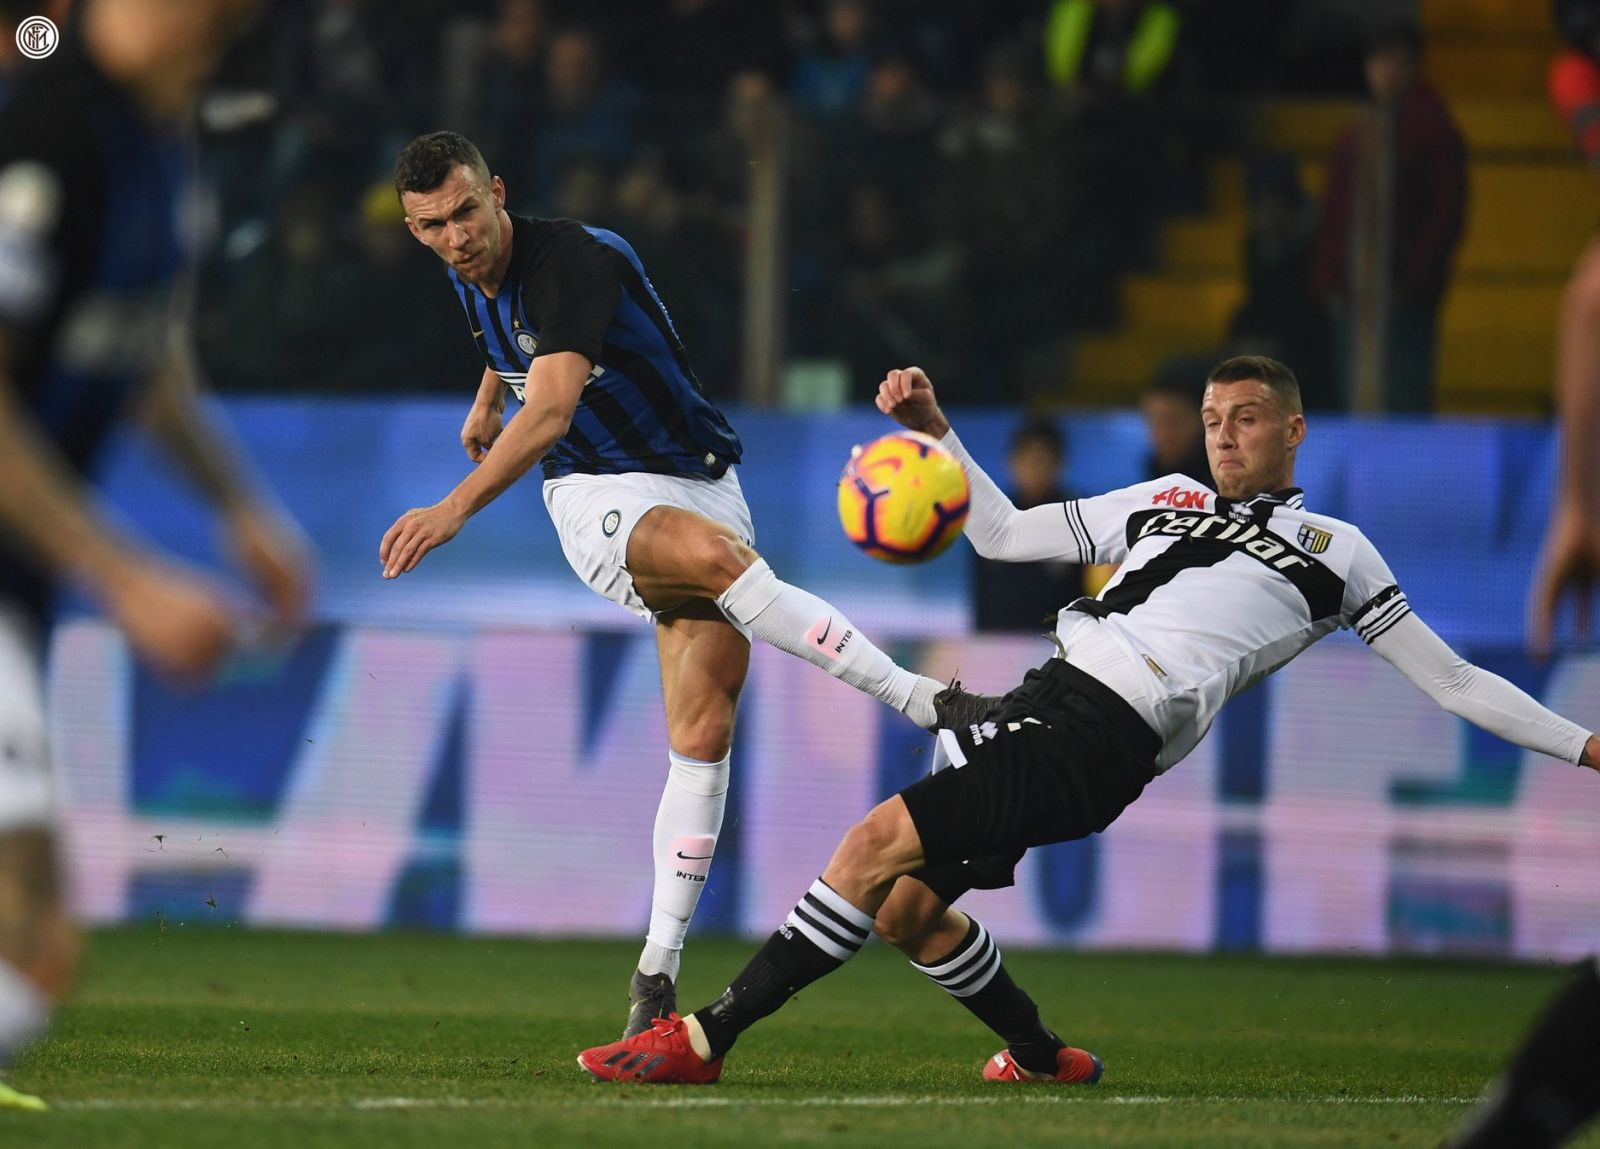 Perisic Parma vs Inter 0-1